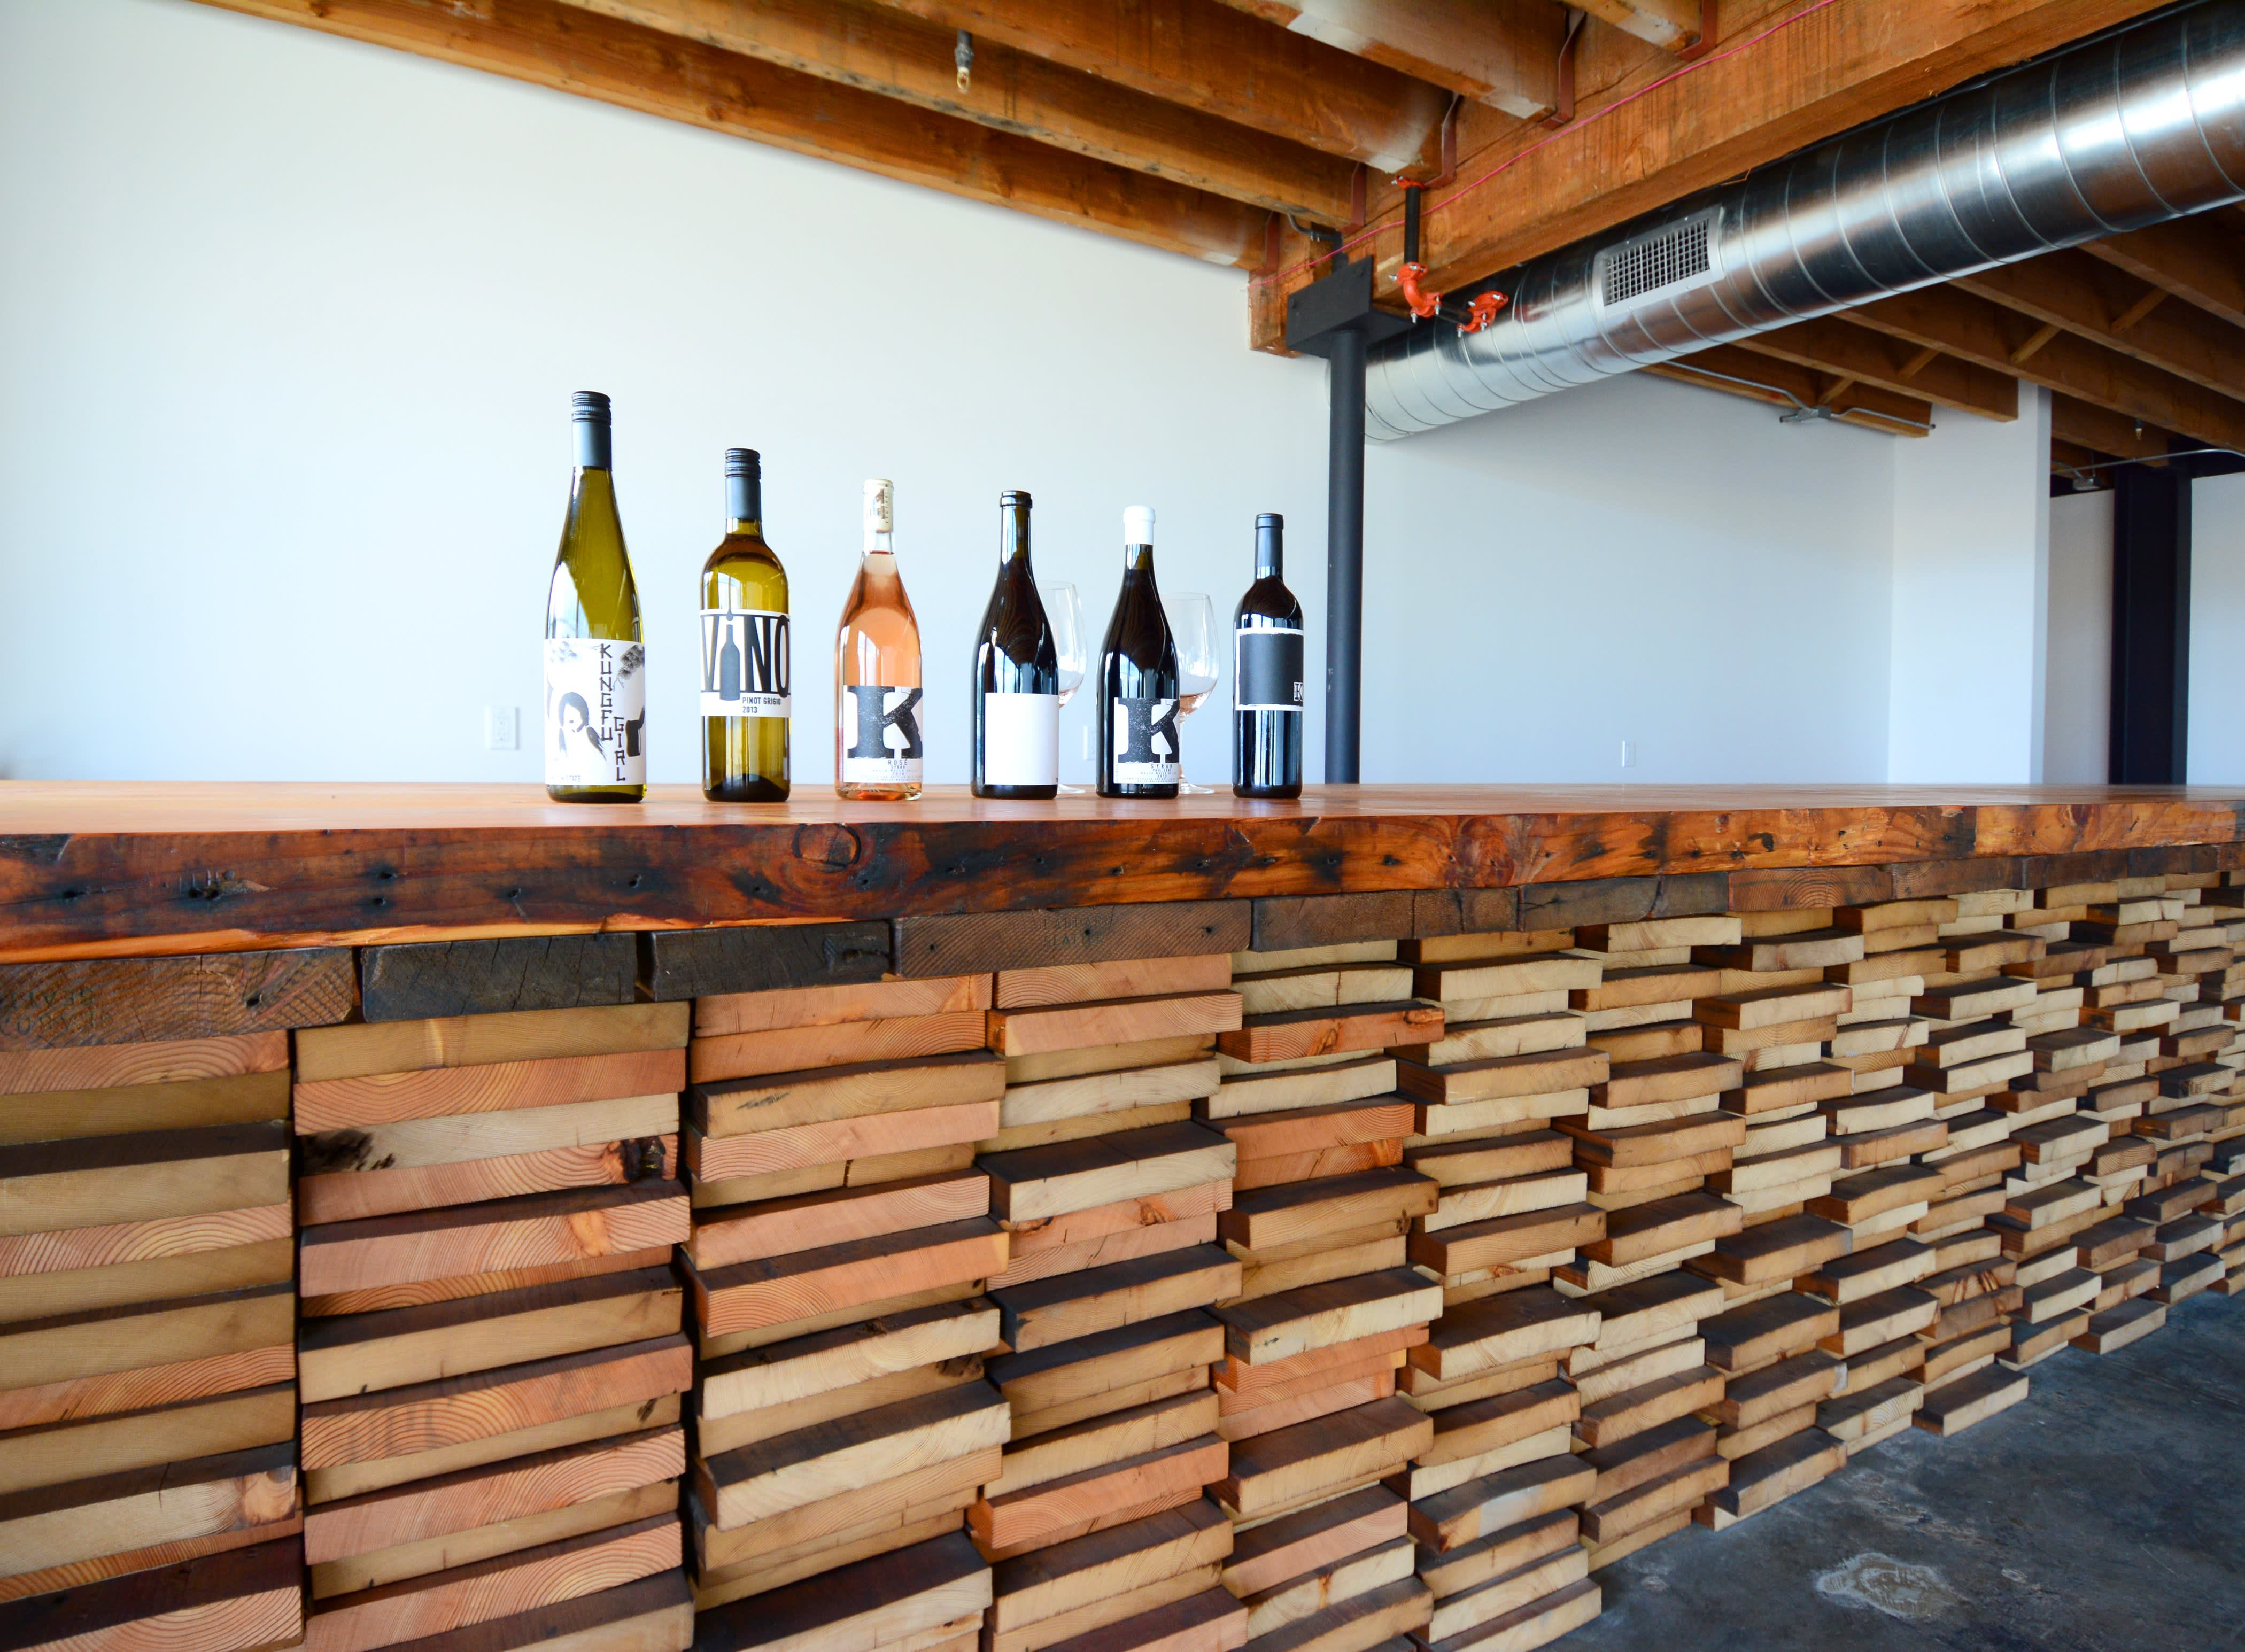 Bar with bottles of wine